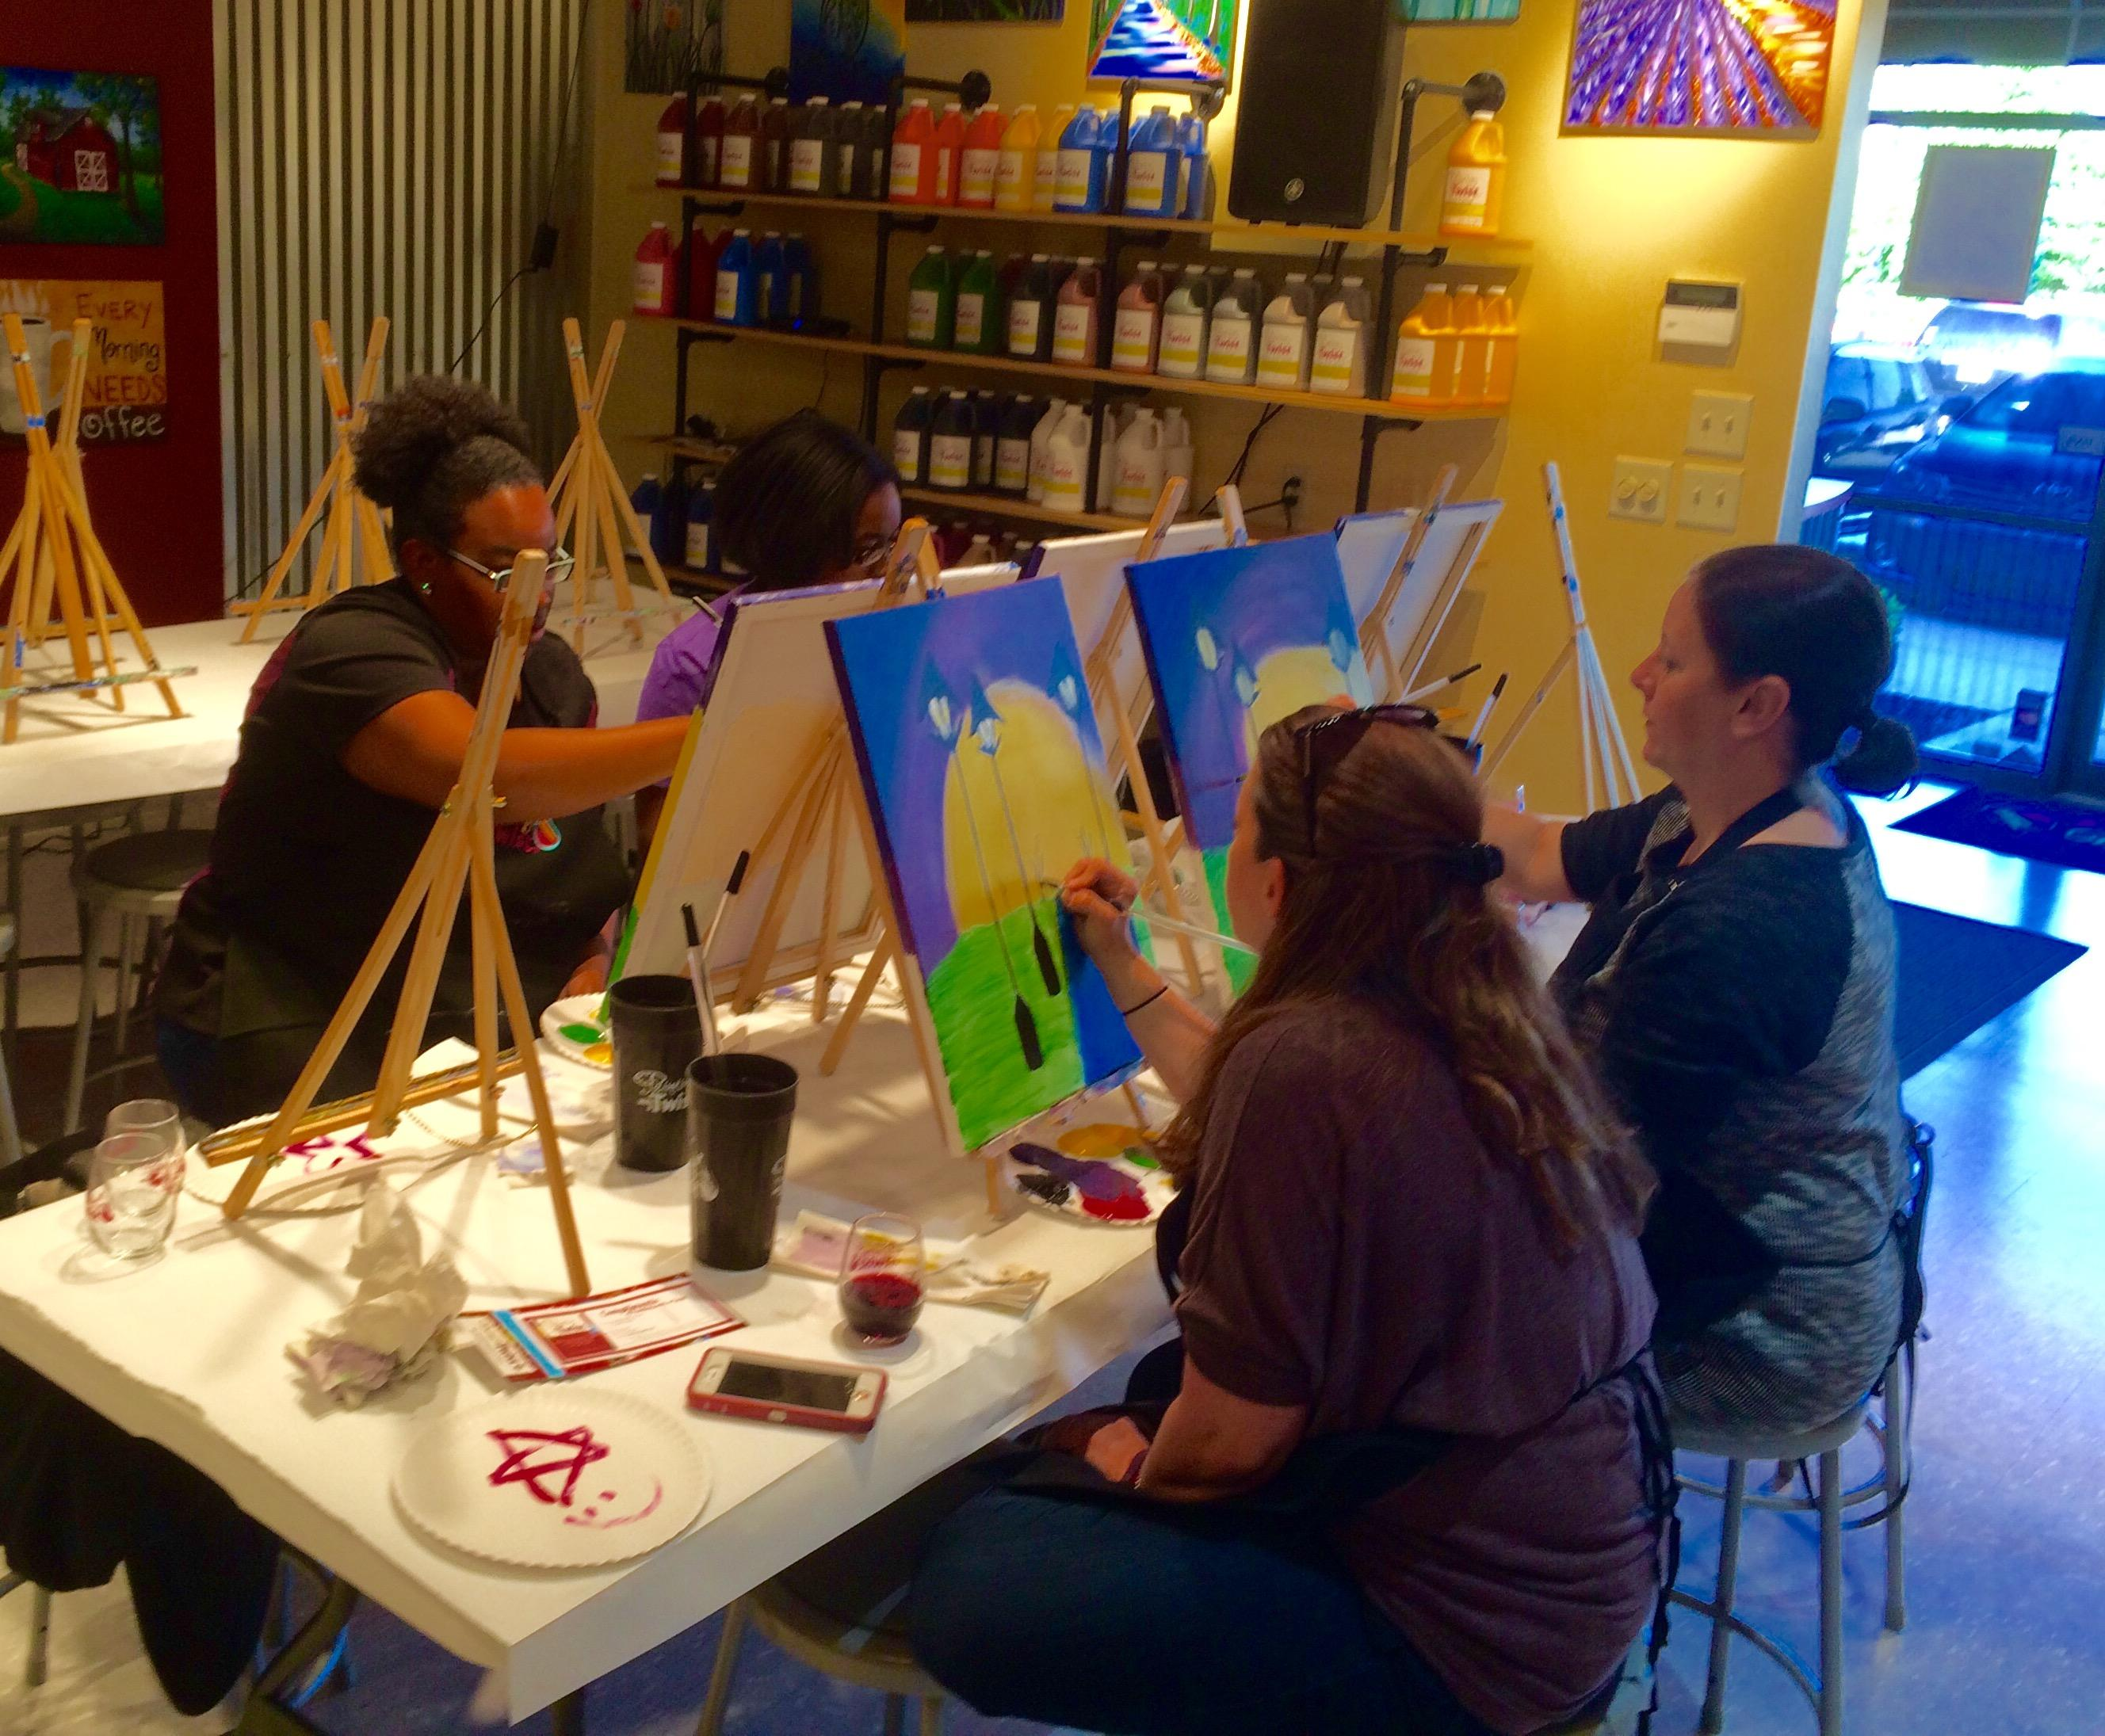 Painting with a twist in fishers in 46038 for Painting with a twist san diego